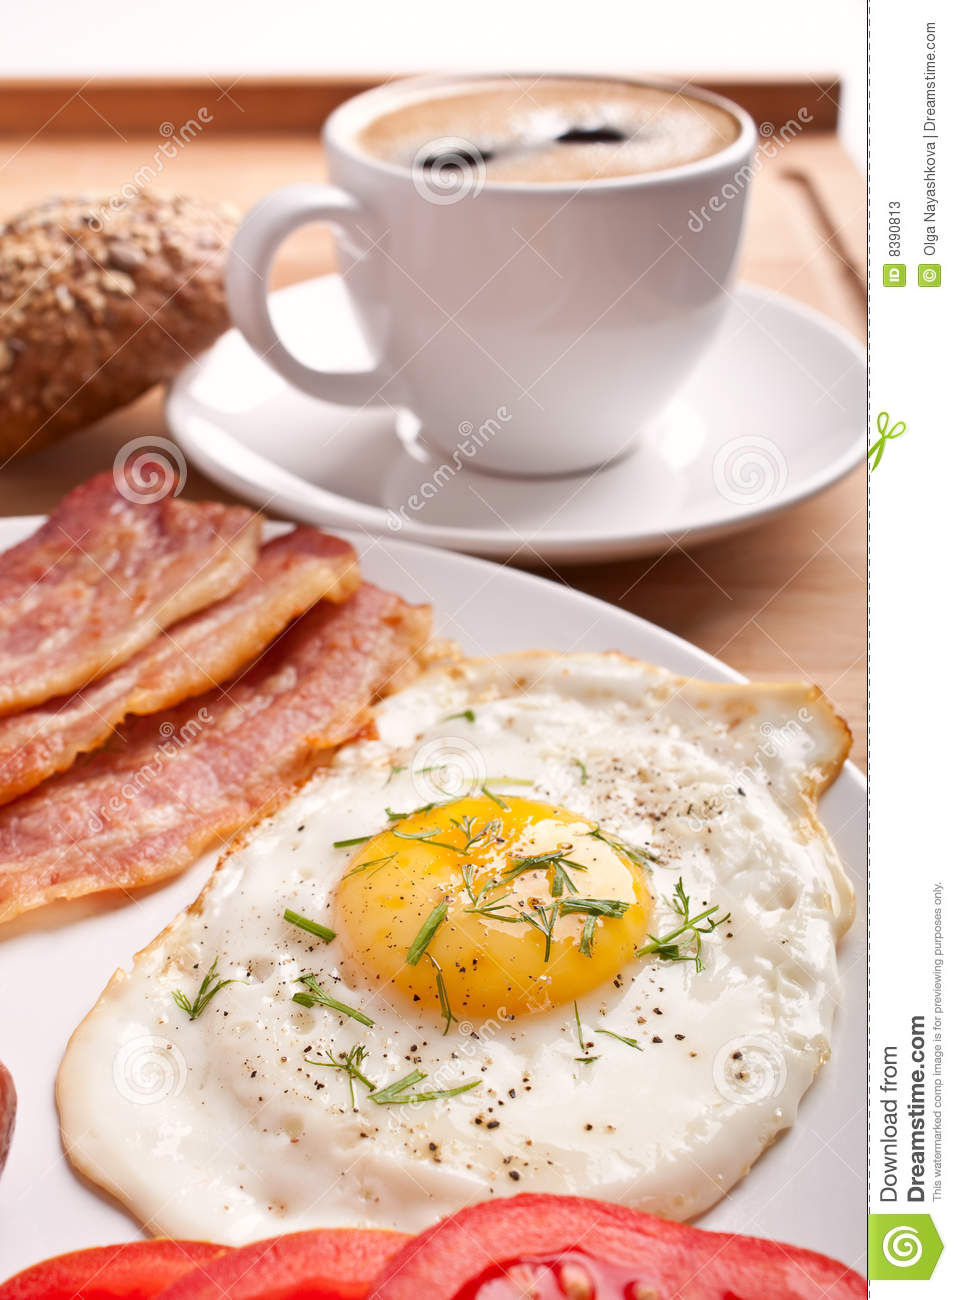 Breakfast With Coffee And Fried Egg Stock Photos - Image: 8390813